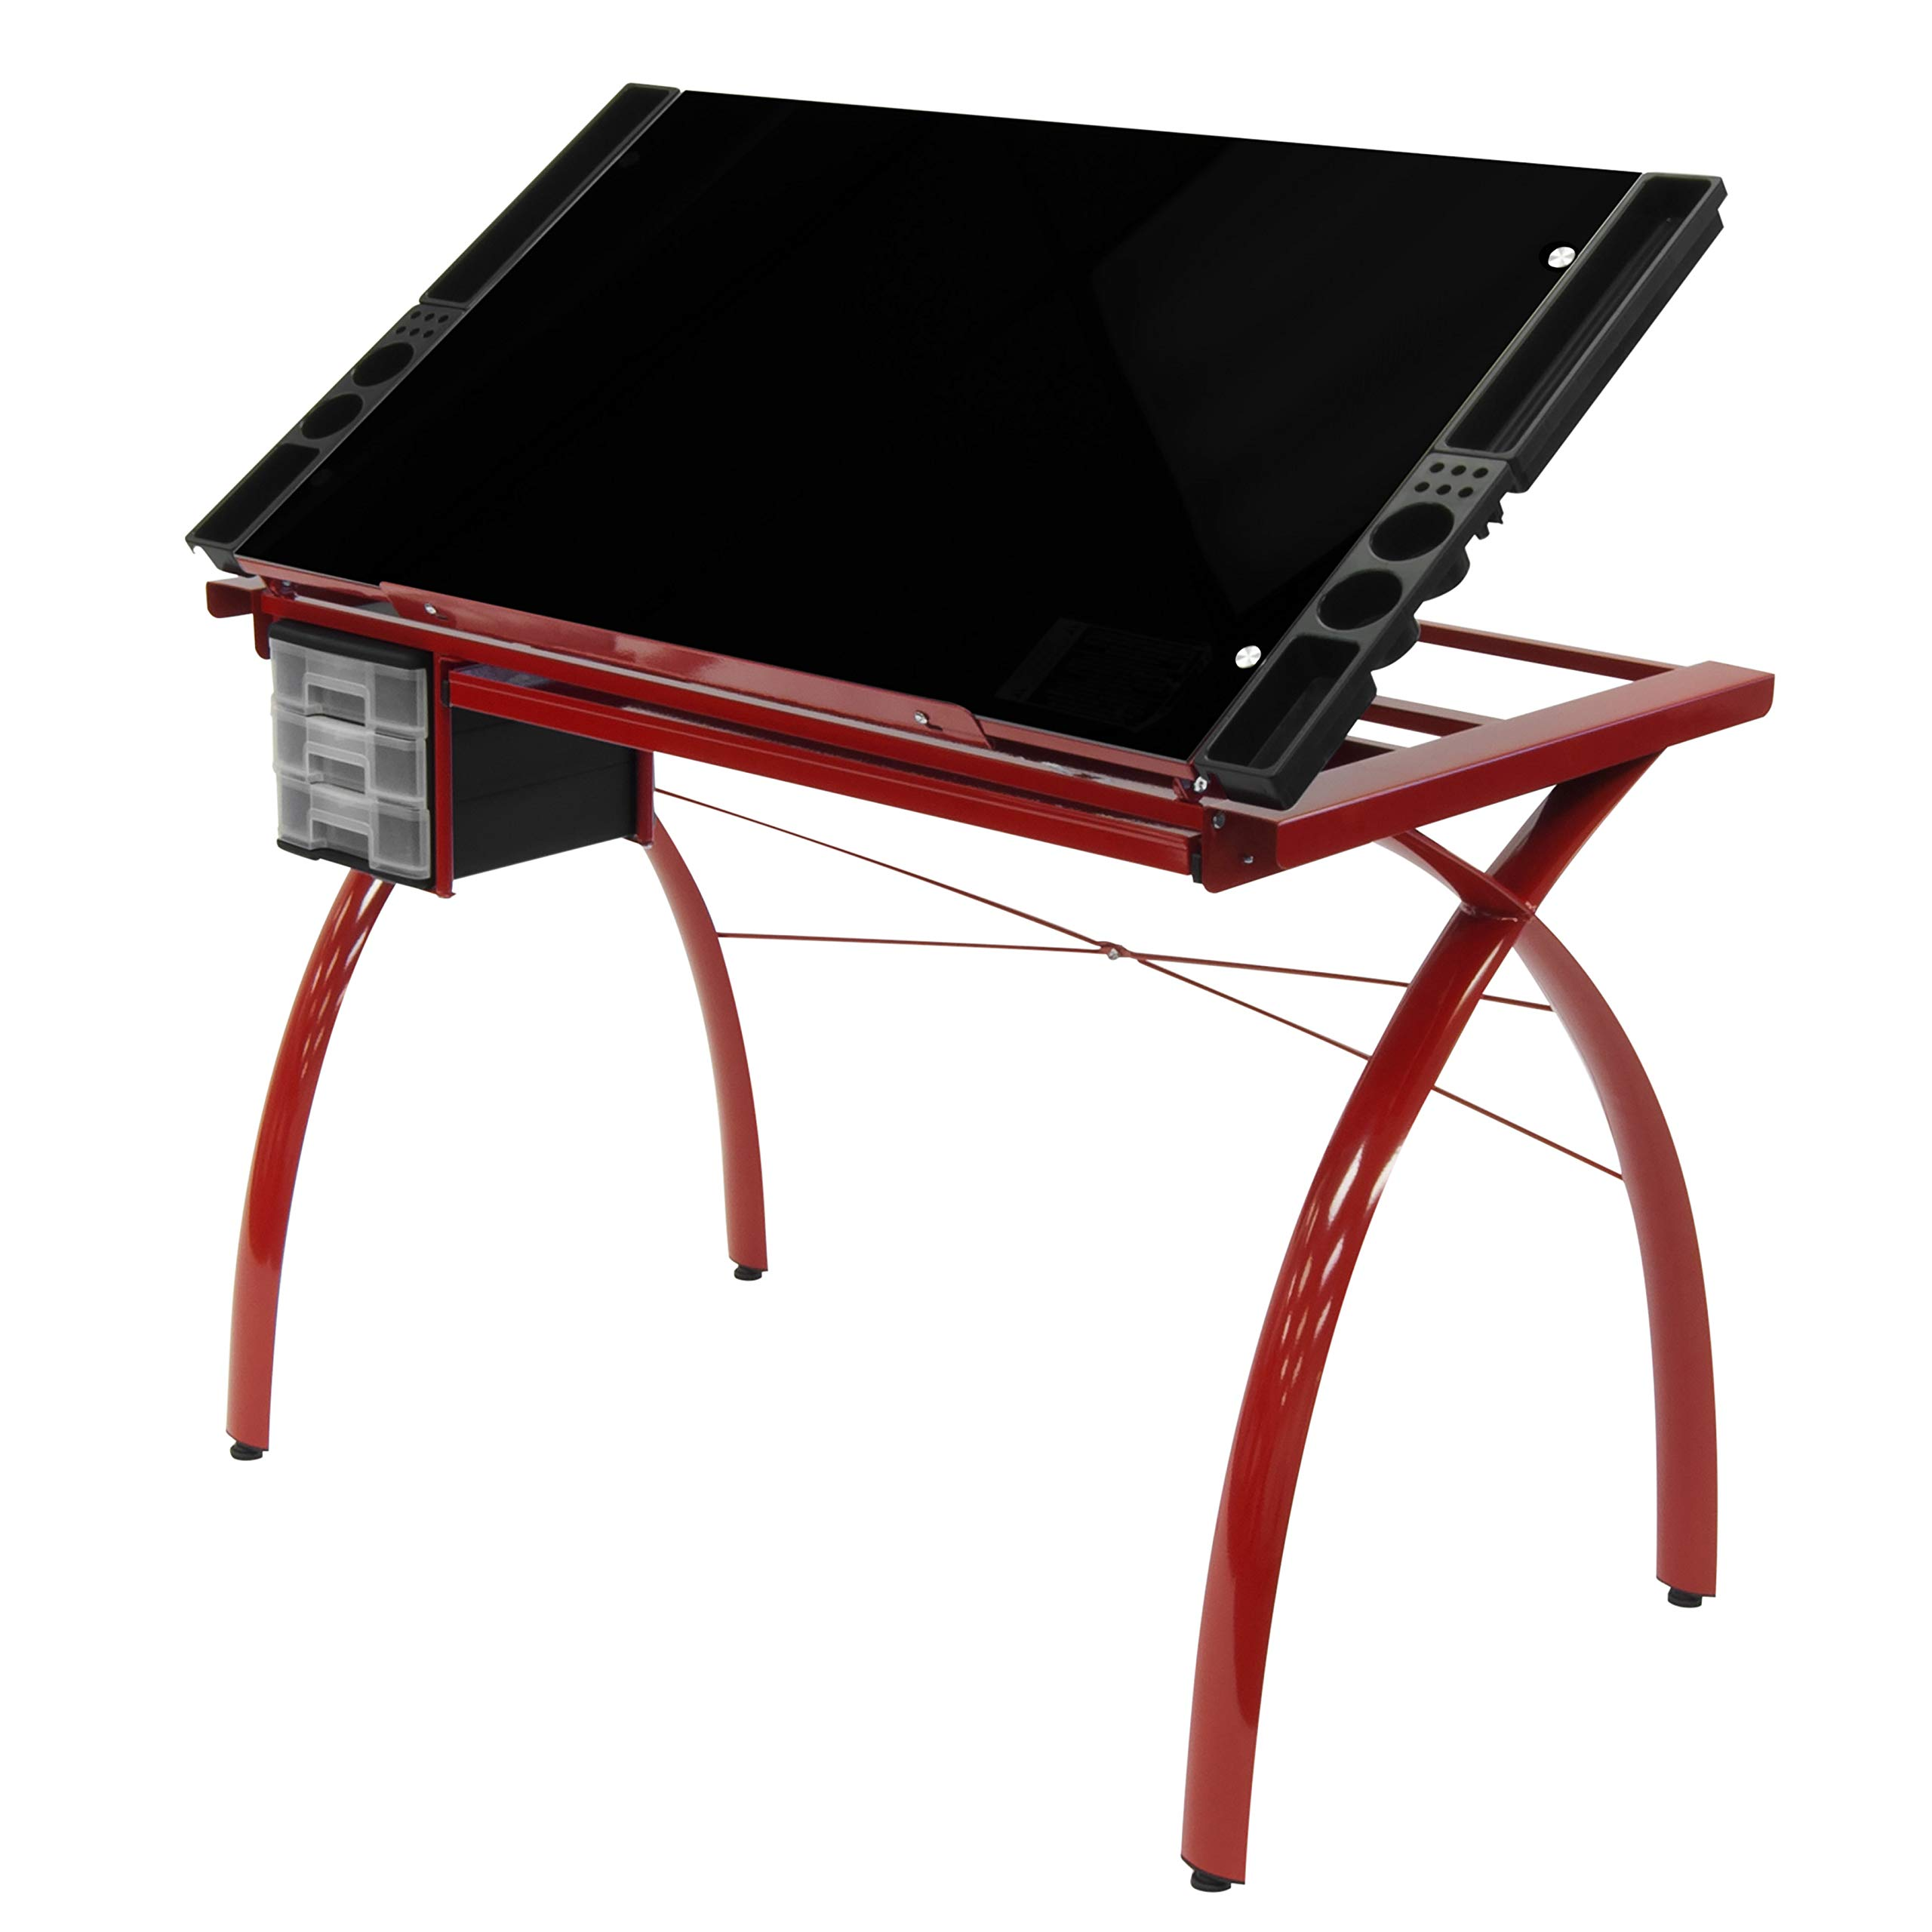 Studio Designs Futura Modern Metal and Glass Hobby, Craft, Drawing, Drafting Table, Desk with 38''W x 24''D Angle Adjustable Top in Red / Black Glass